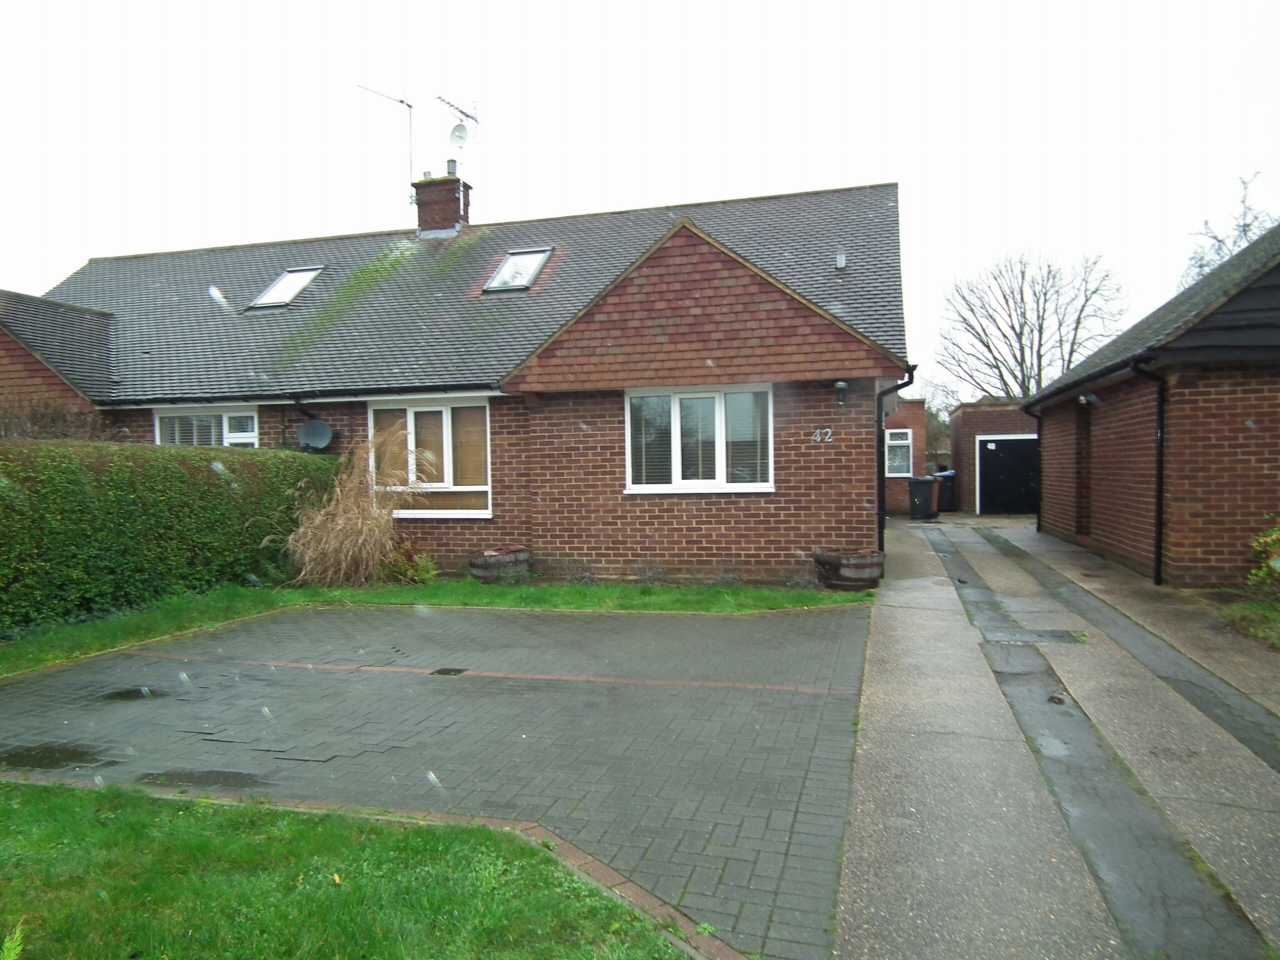 4 bedroom detached bungalow bungalow Let Agreed in Welham Green - Property photograph